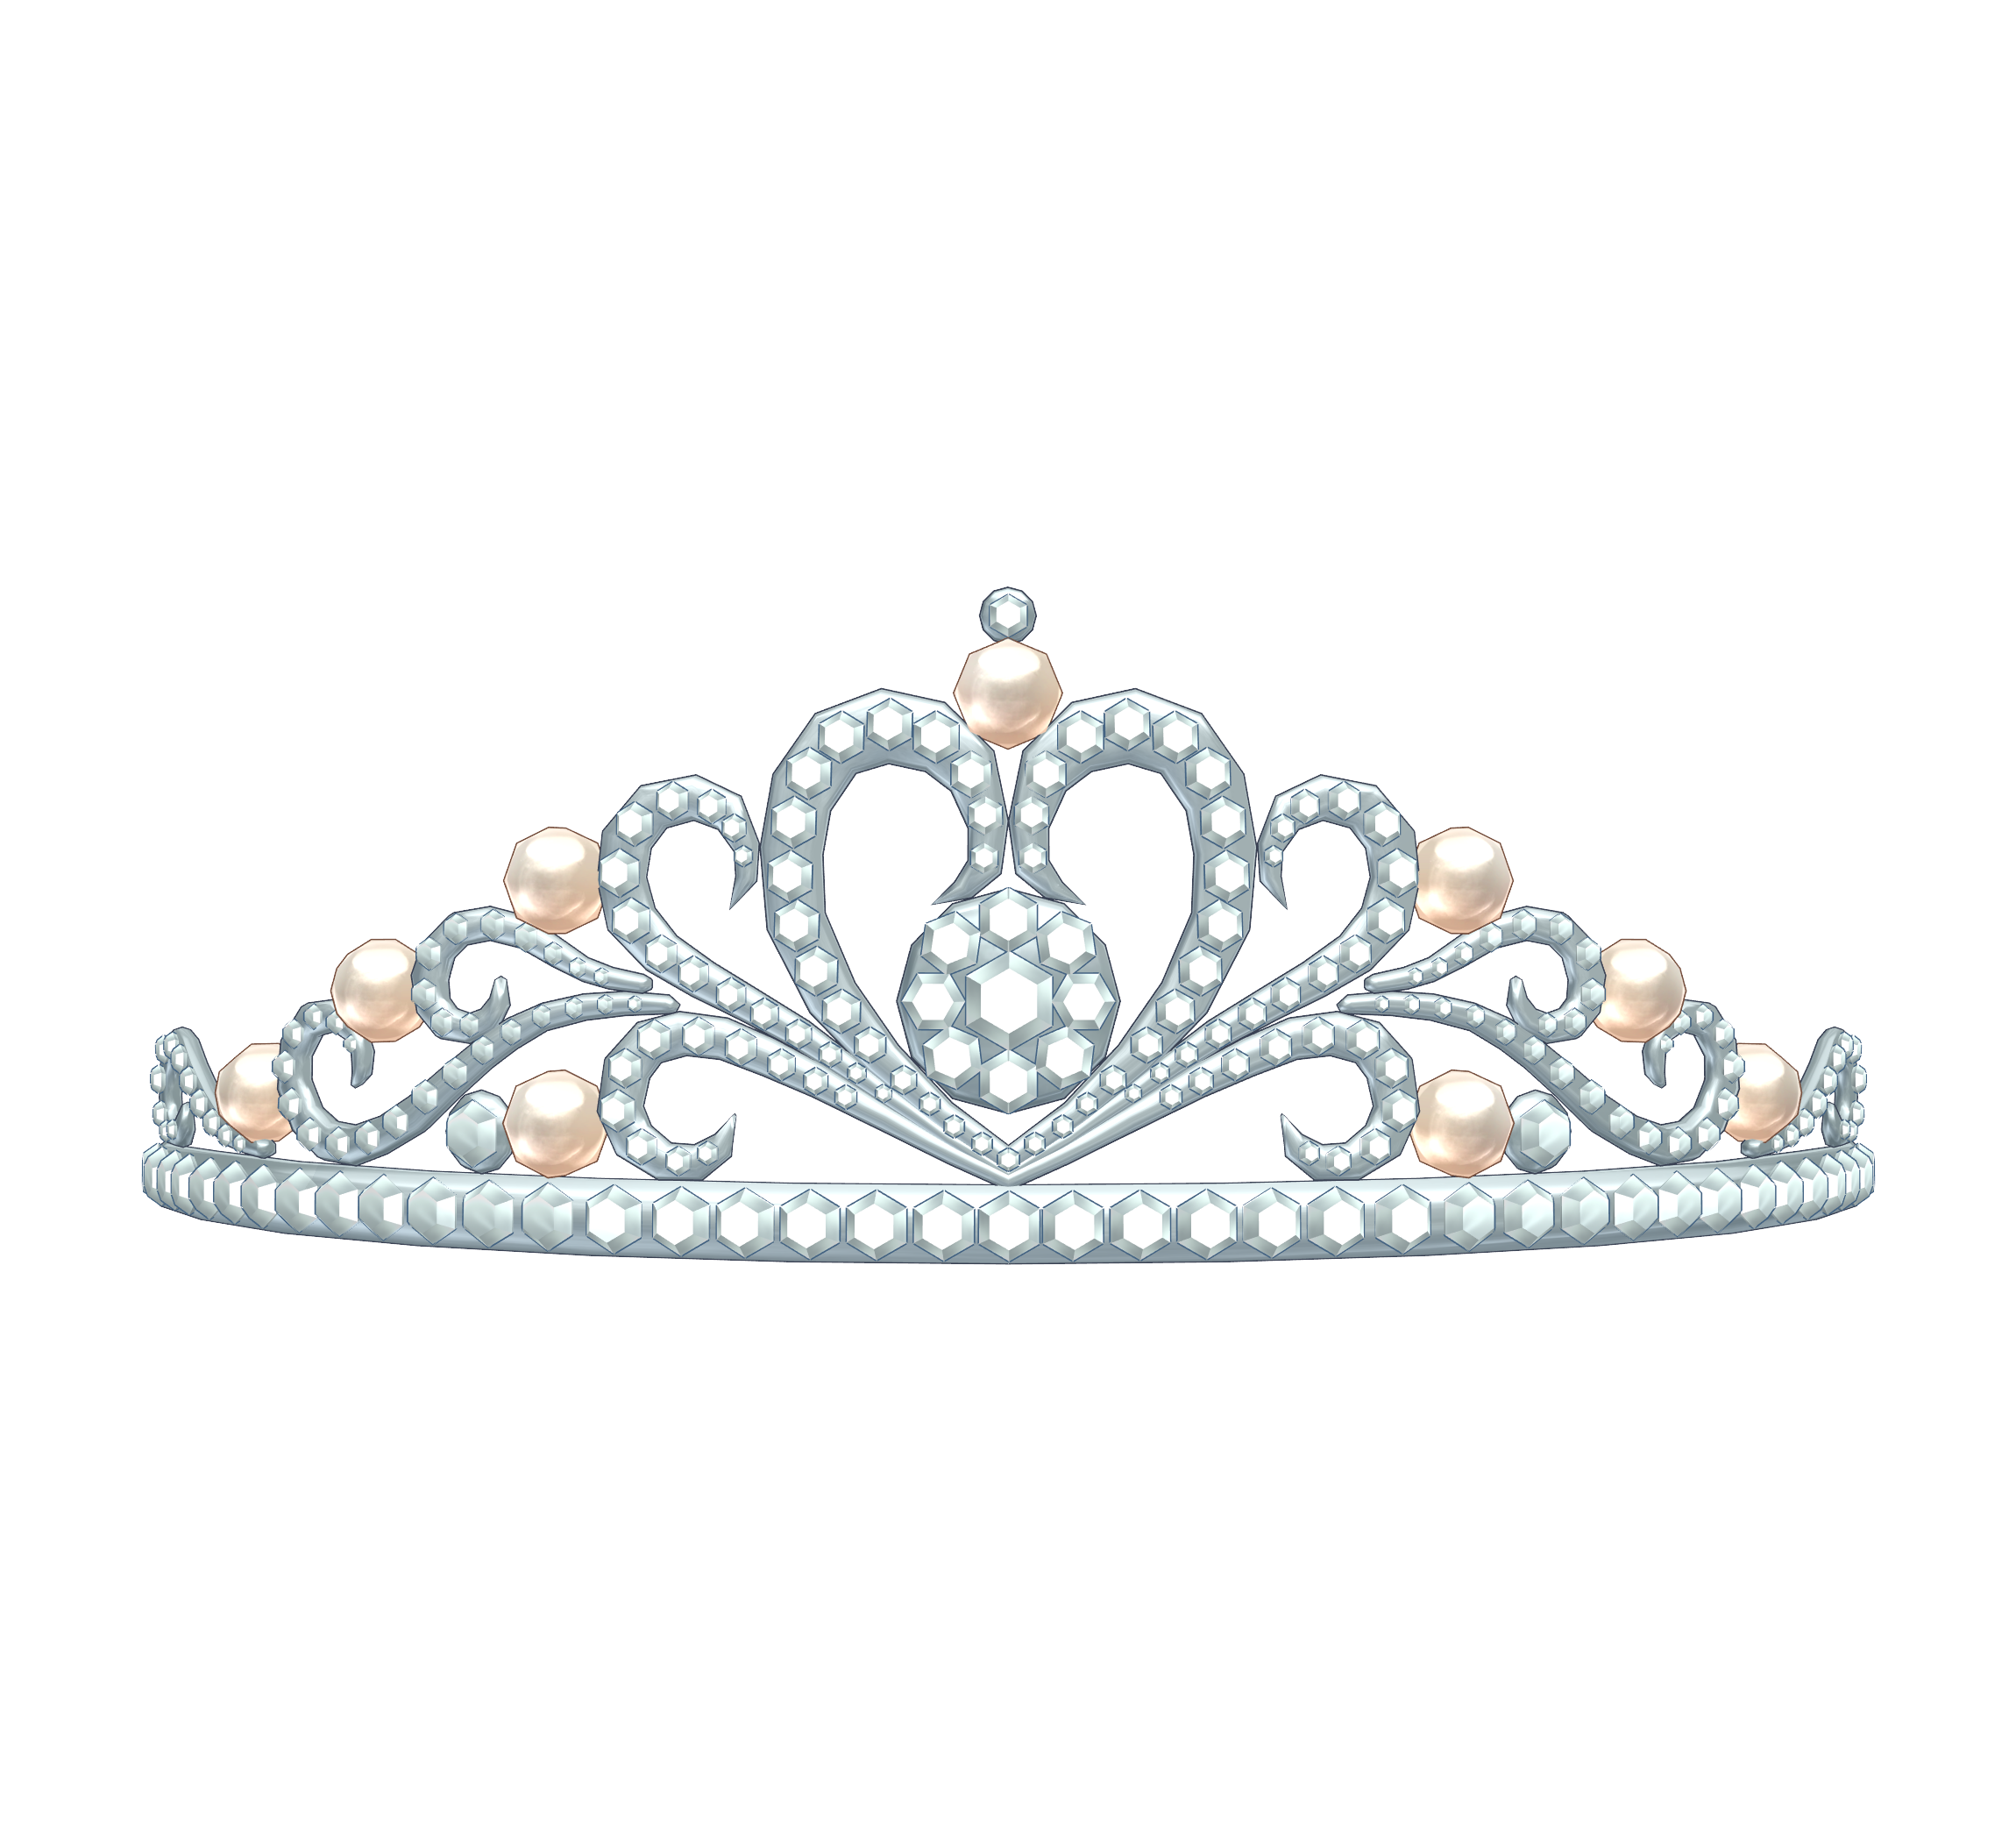 Free princess crown clipart silver clipart freeuse download Quinceanera Crown Clipart & Quinceanera Crown Clip Art Images #3505 ... clipart freeuse download